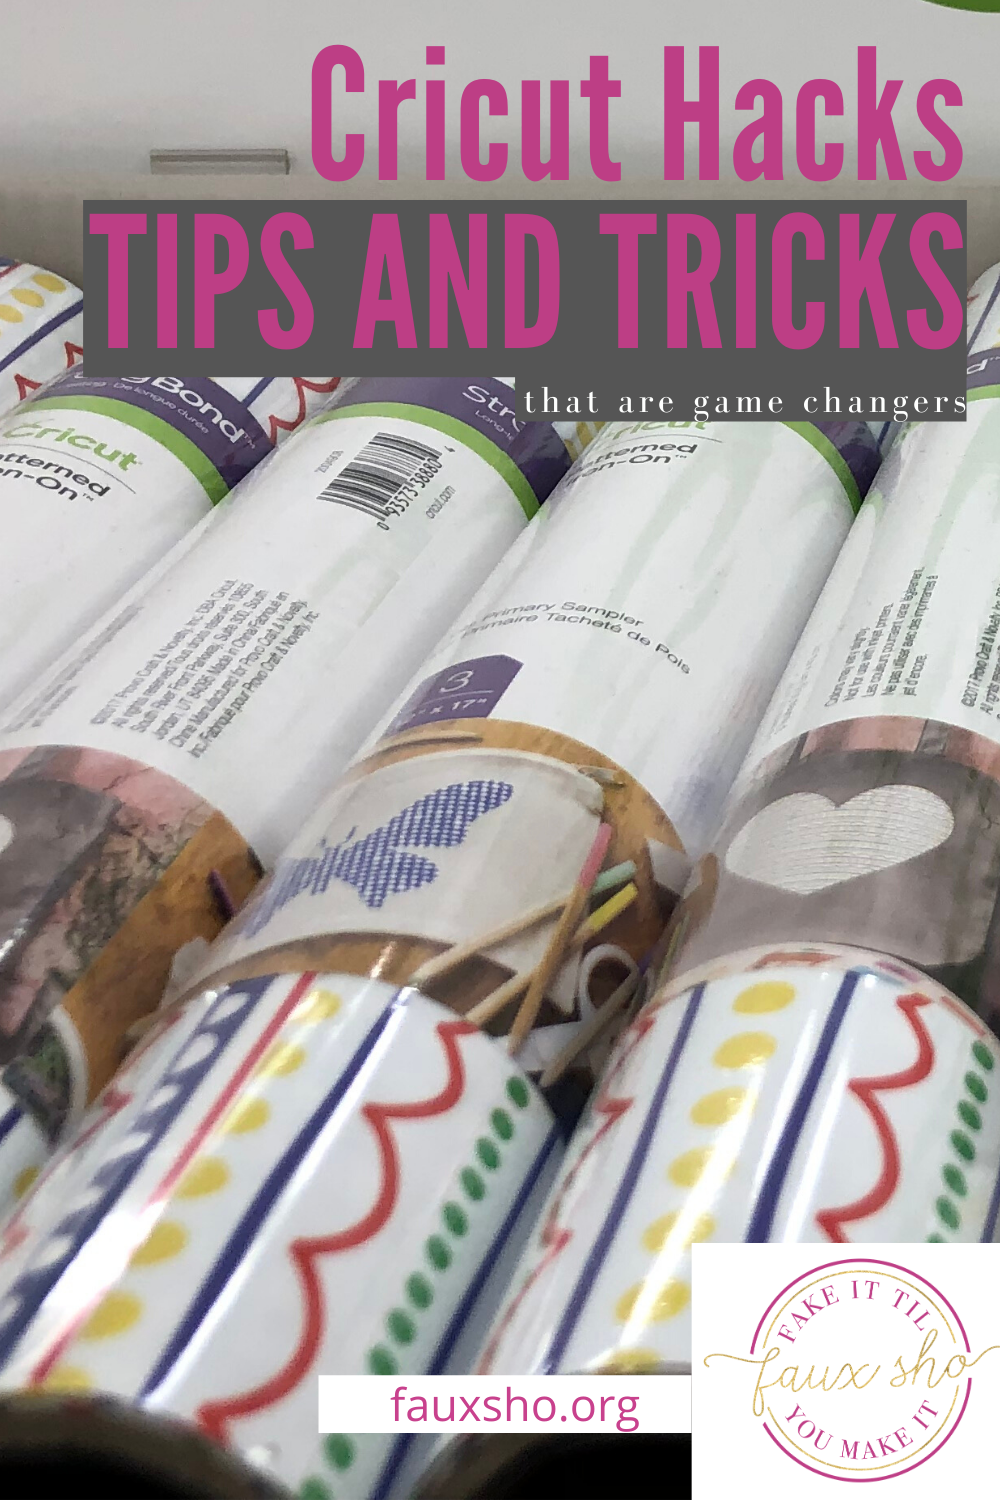 If you want to take your Cricut game to the next level, these Cricut hacks will get you there fast! Learn tips and tricks to make your skills better than ever. Read on for more info about these hacks. #howtousethecricut #cricutshortcuts #crafthacks #fauxshoblog